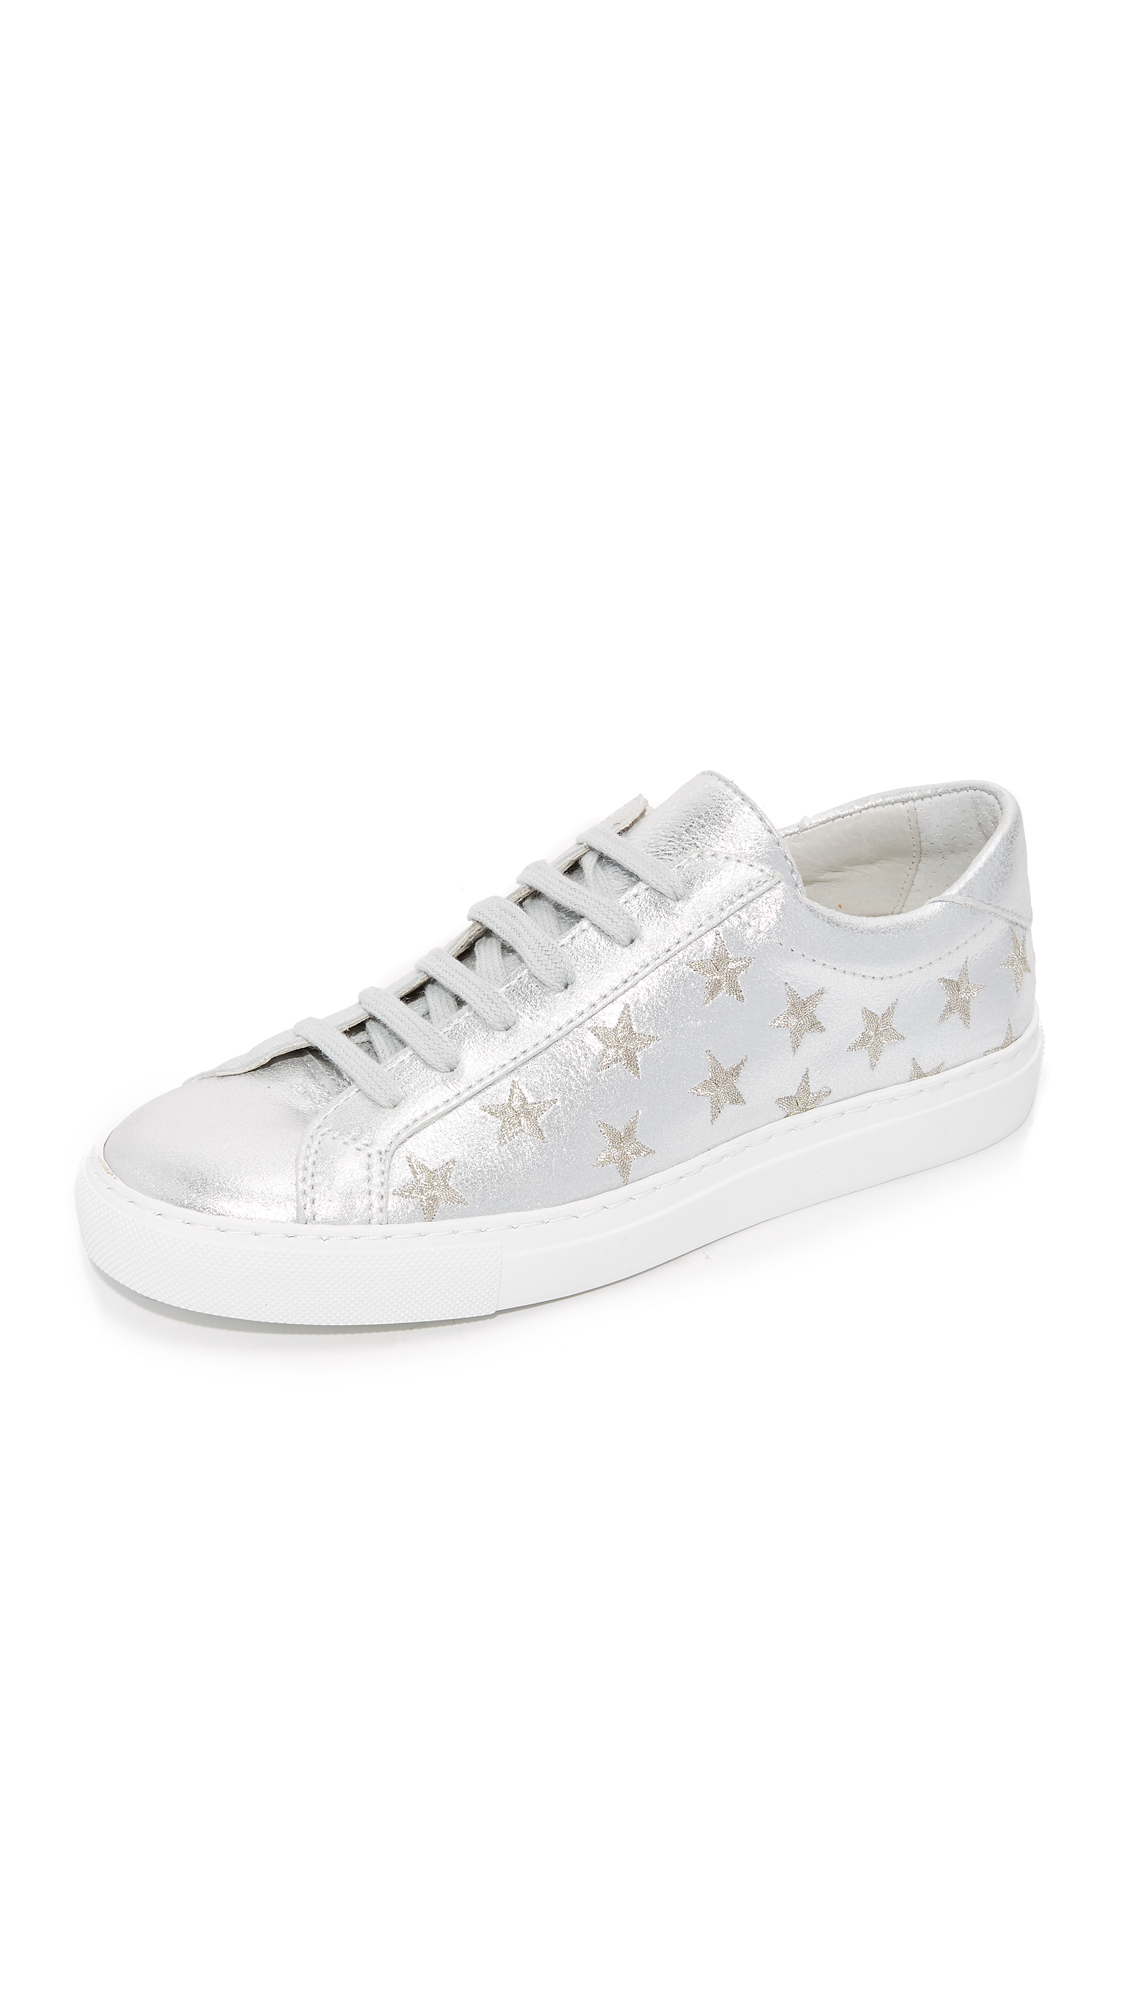 South Parade Stars Leather Lace Up Sneakers - Silver/Silver